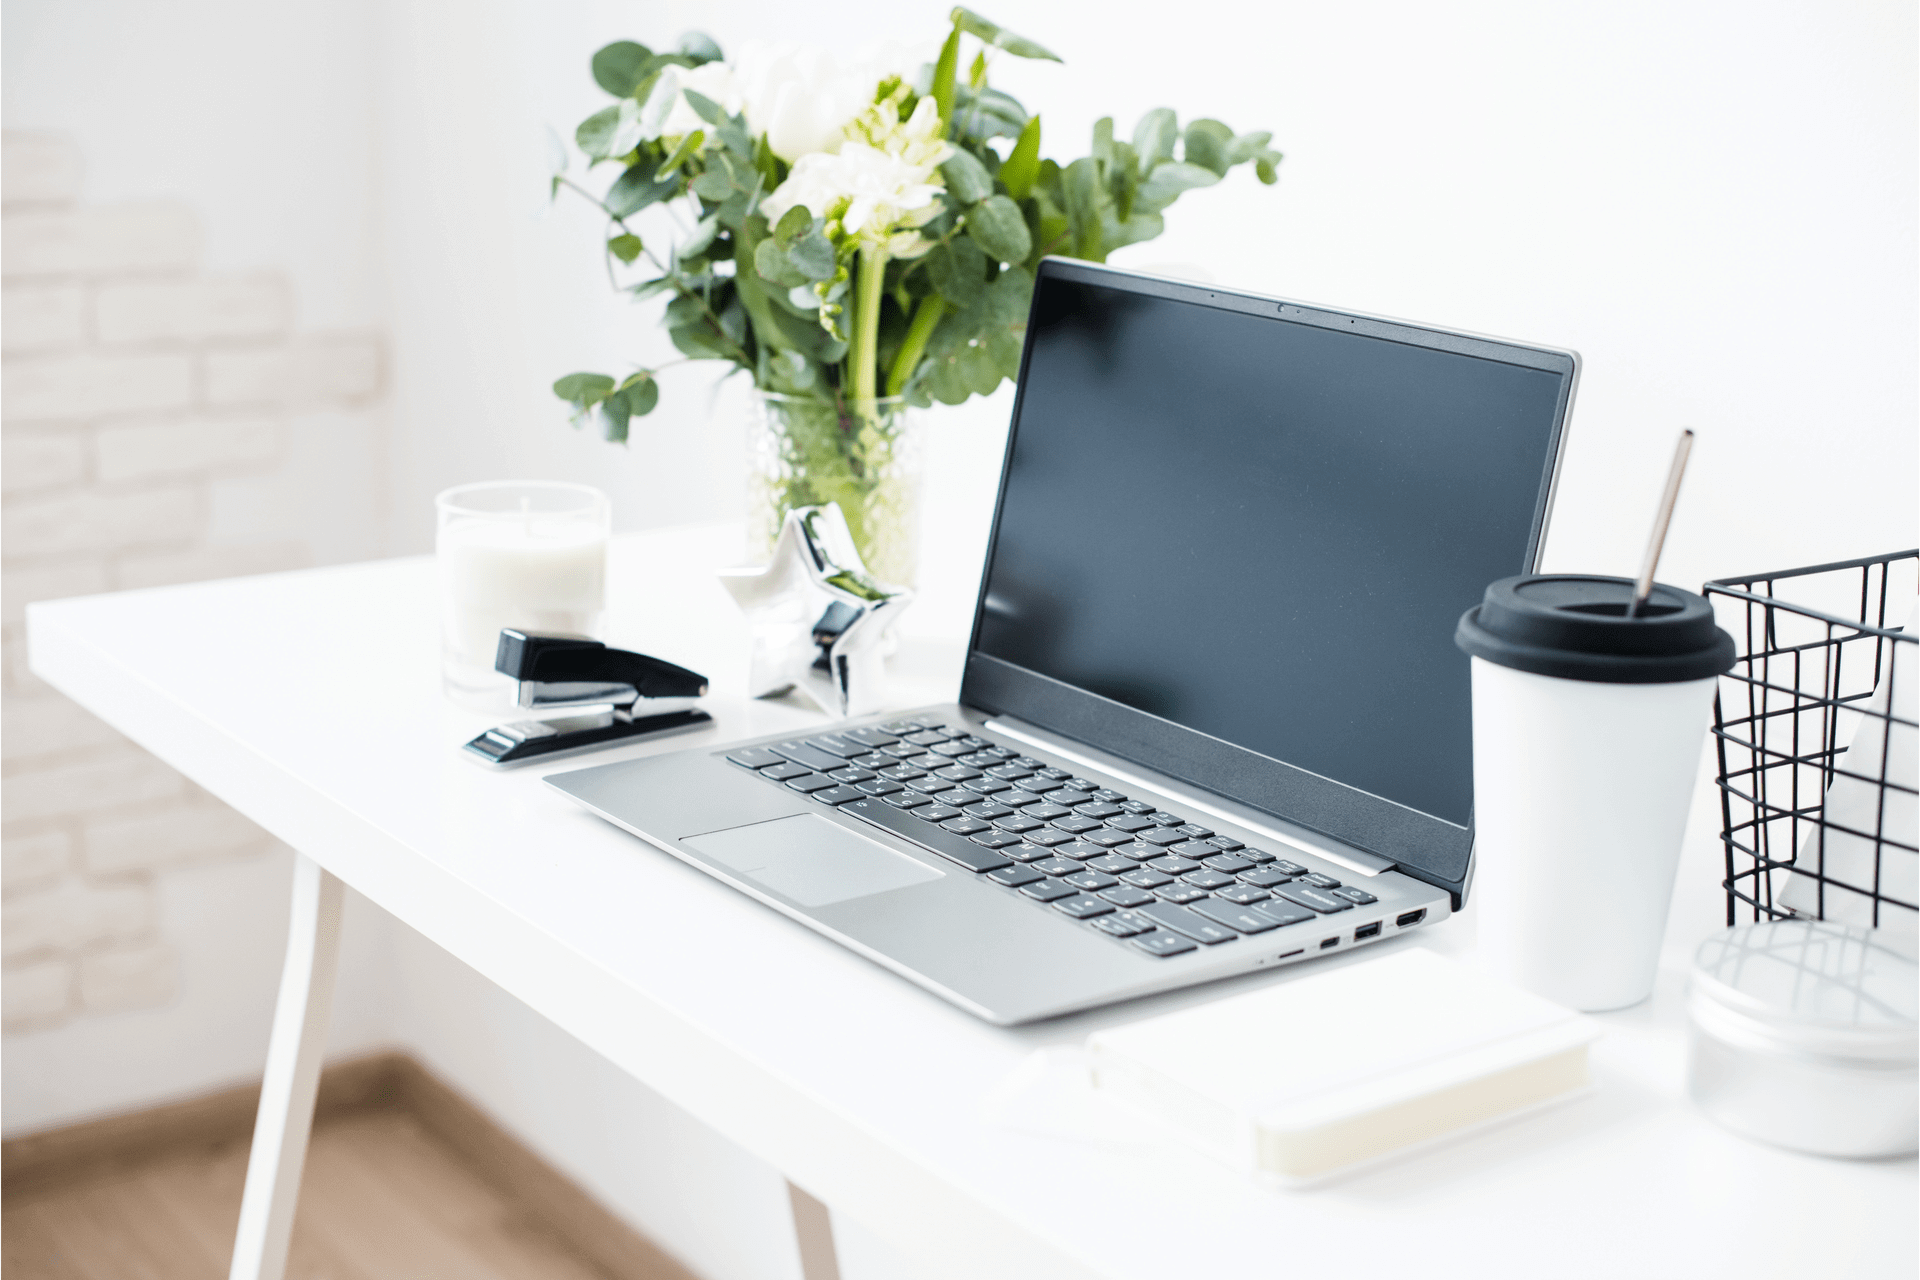 Bloggers workplace, laptop and flowers on a white table top to demonstrate content optimisation